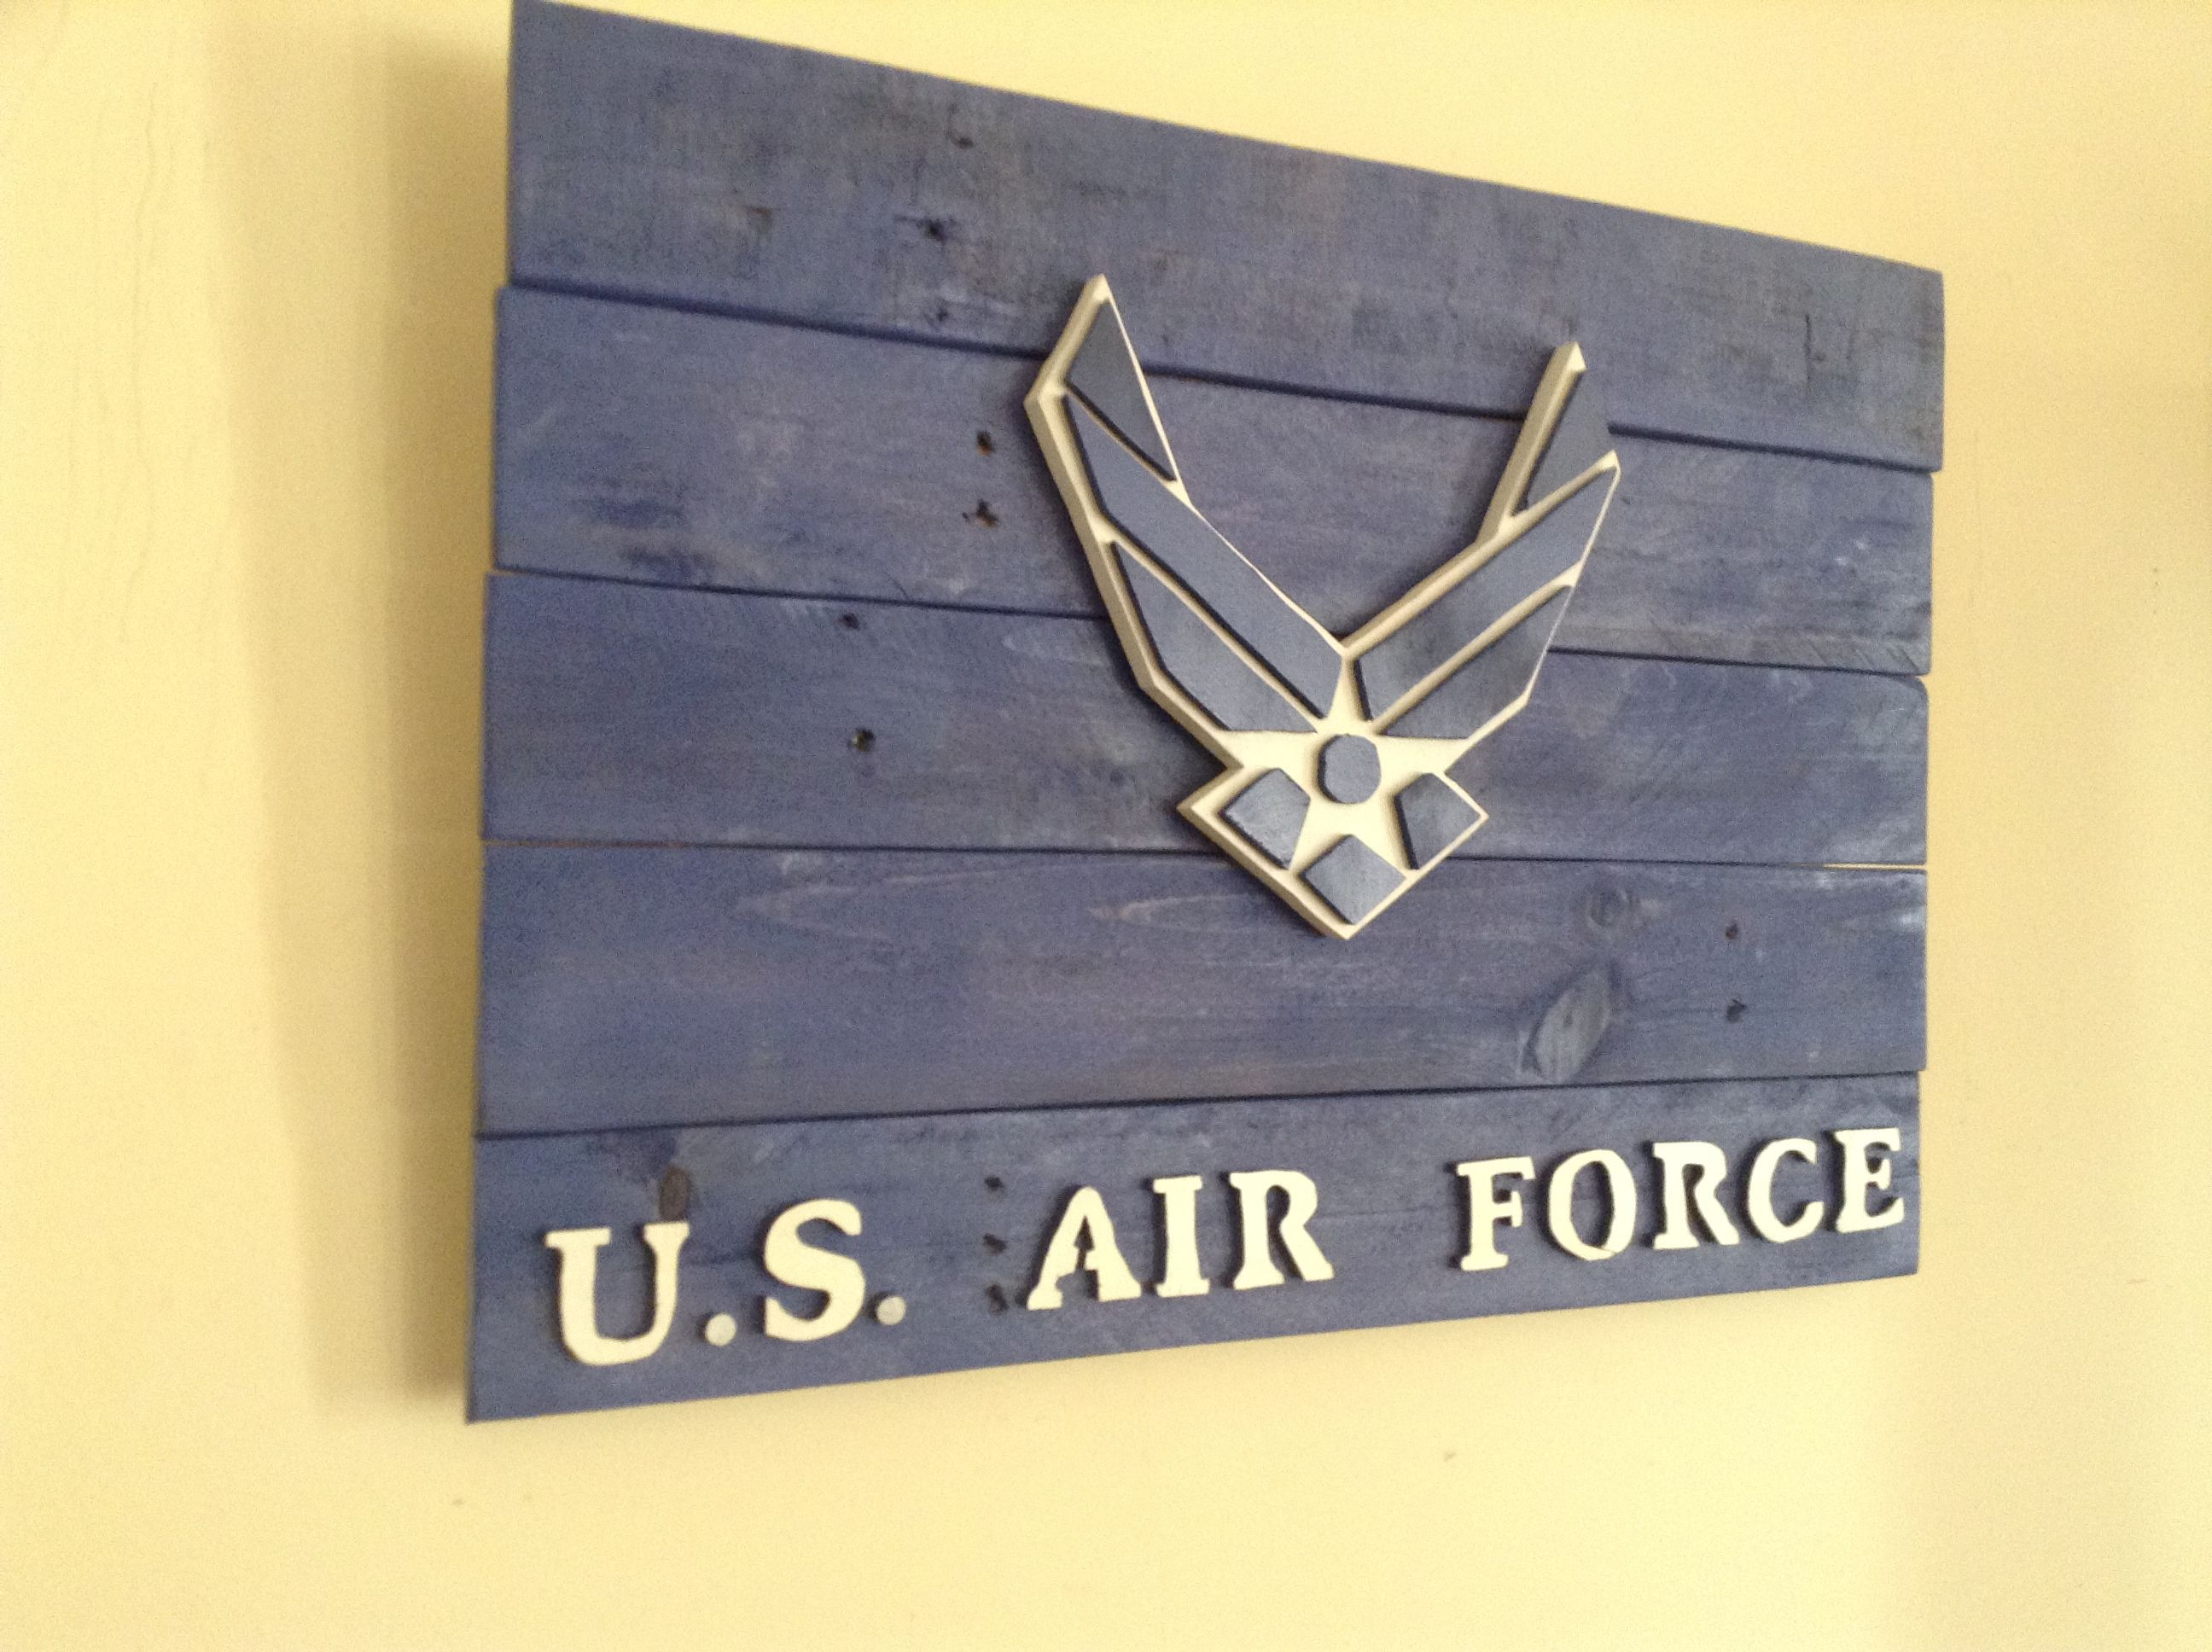 Usaf Wall Decor : Us air force wall art on pallet wood backing wide dale and dana designs